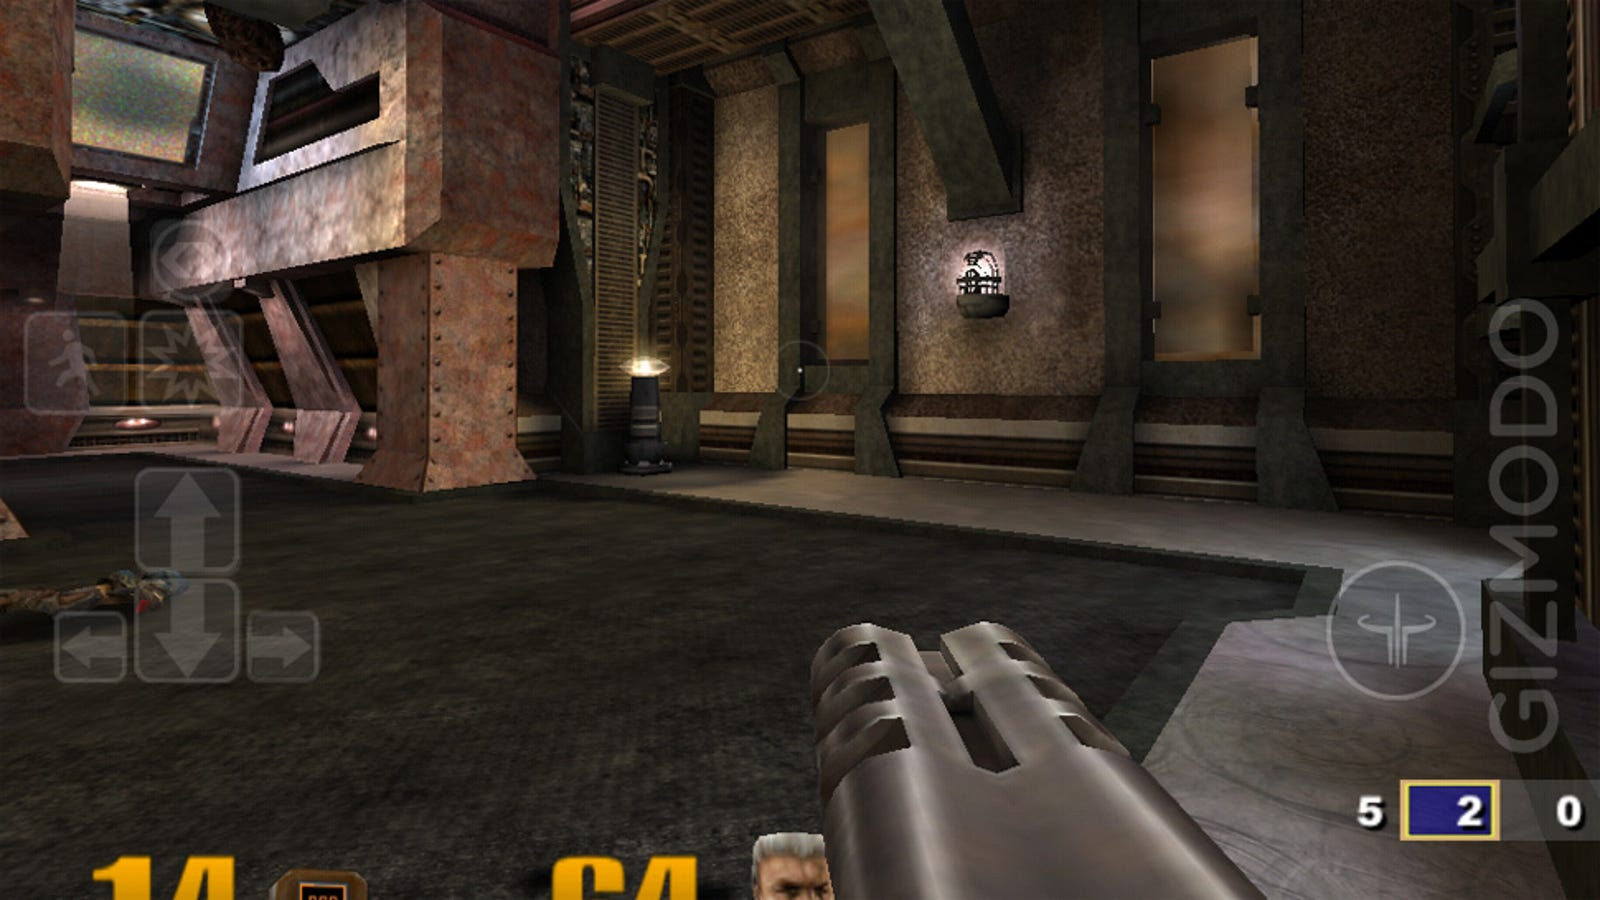 How to download quake 3 arena full version for free pc